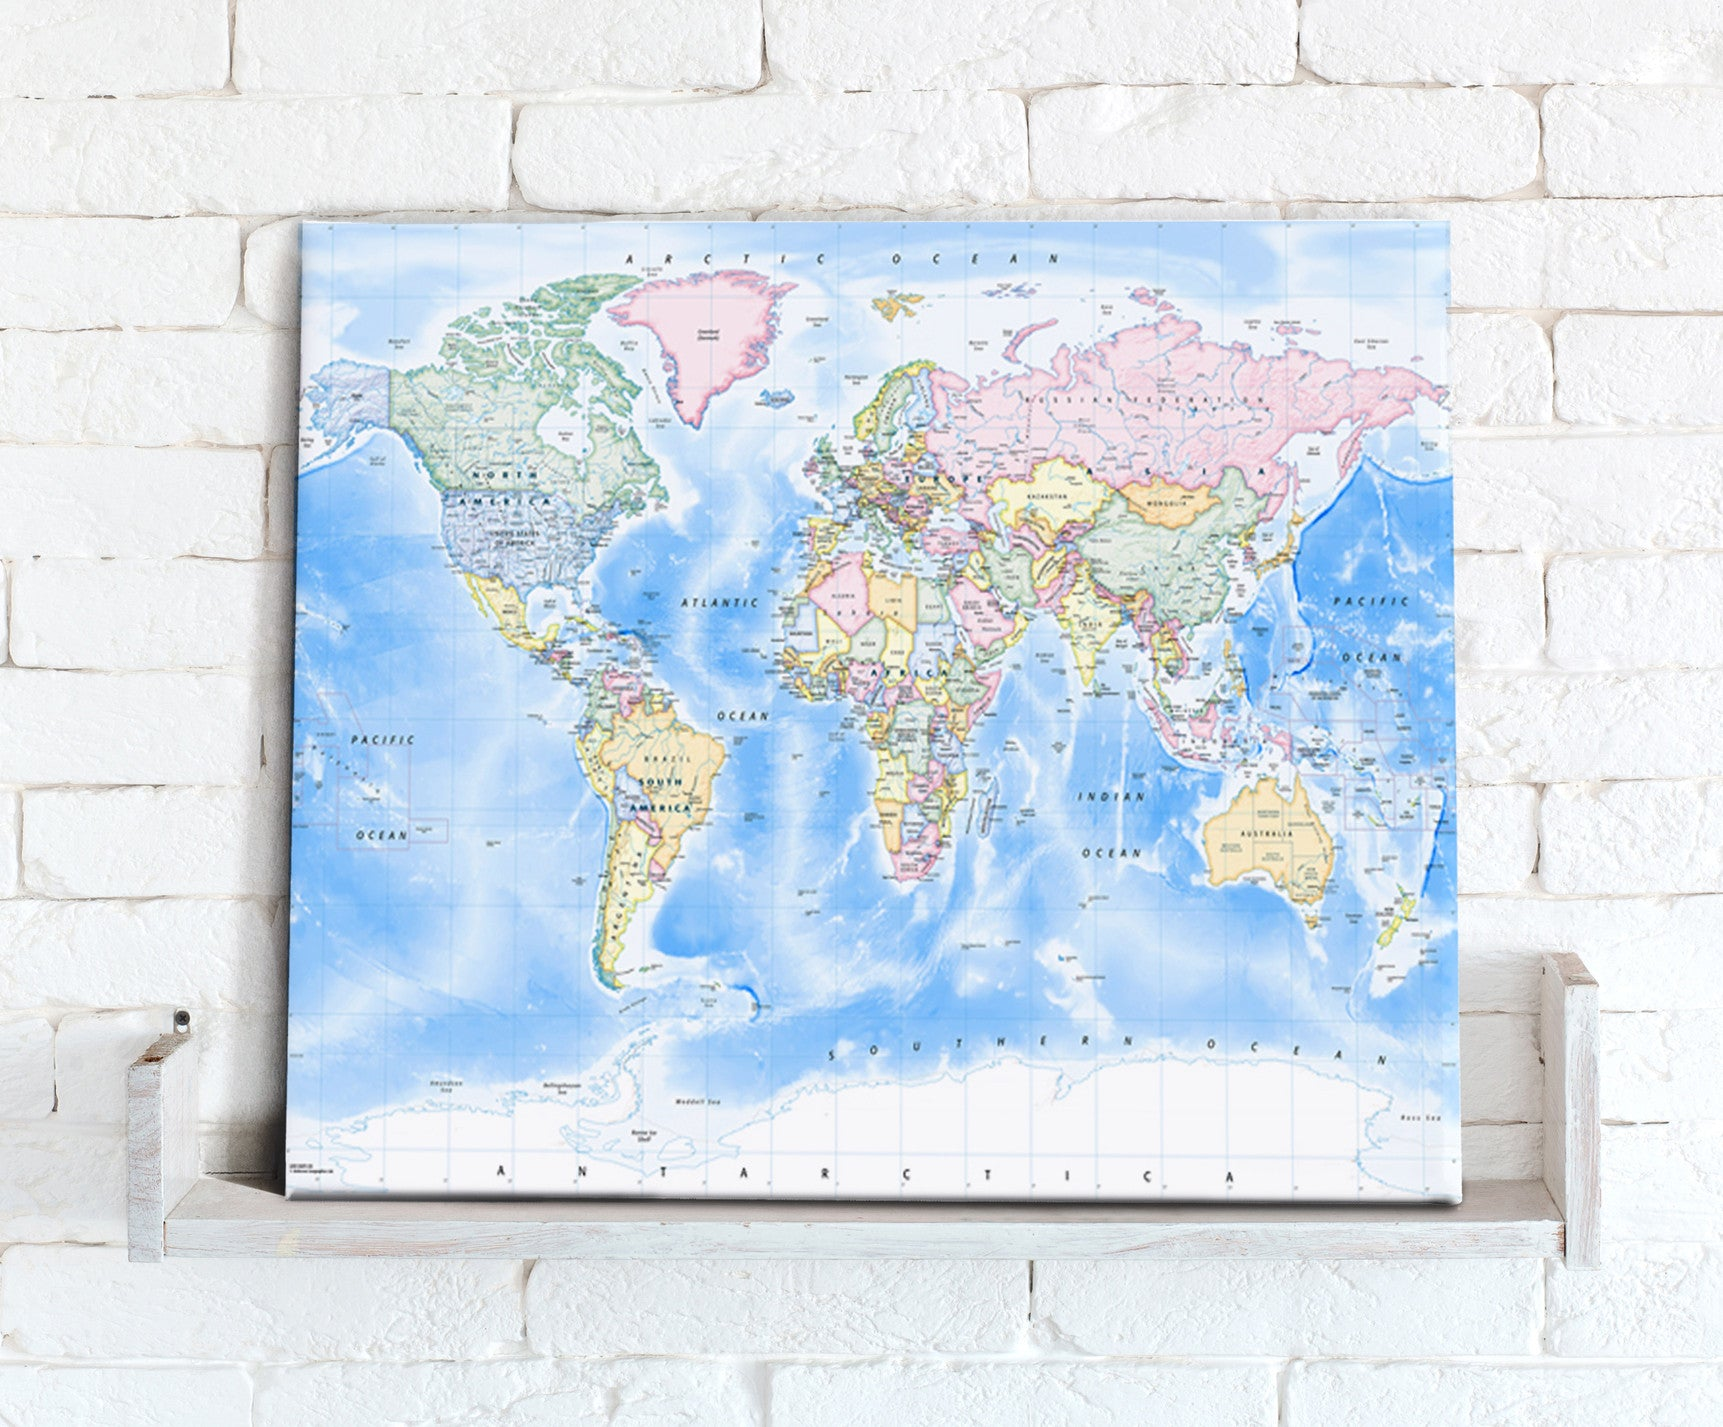 Map canvas political world map traditional from love maps on map canvas political world map traditional love maps on gumiabroncs Choice Image